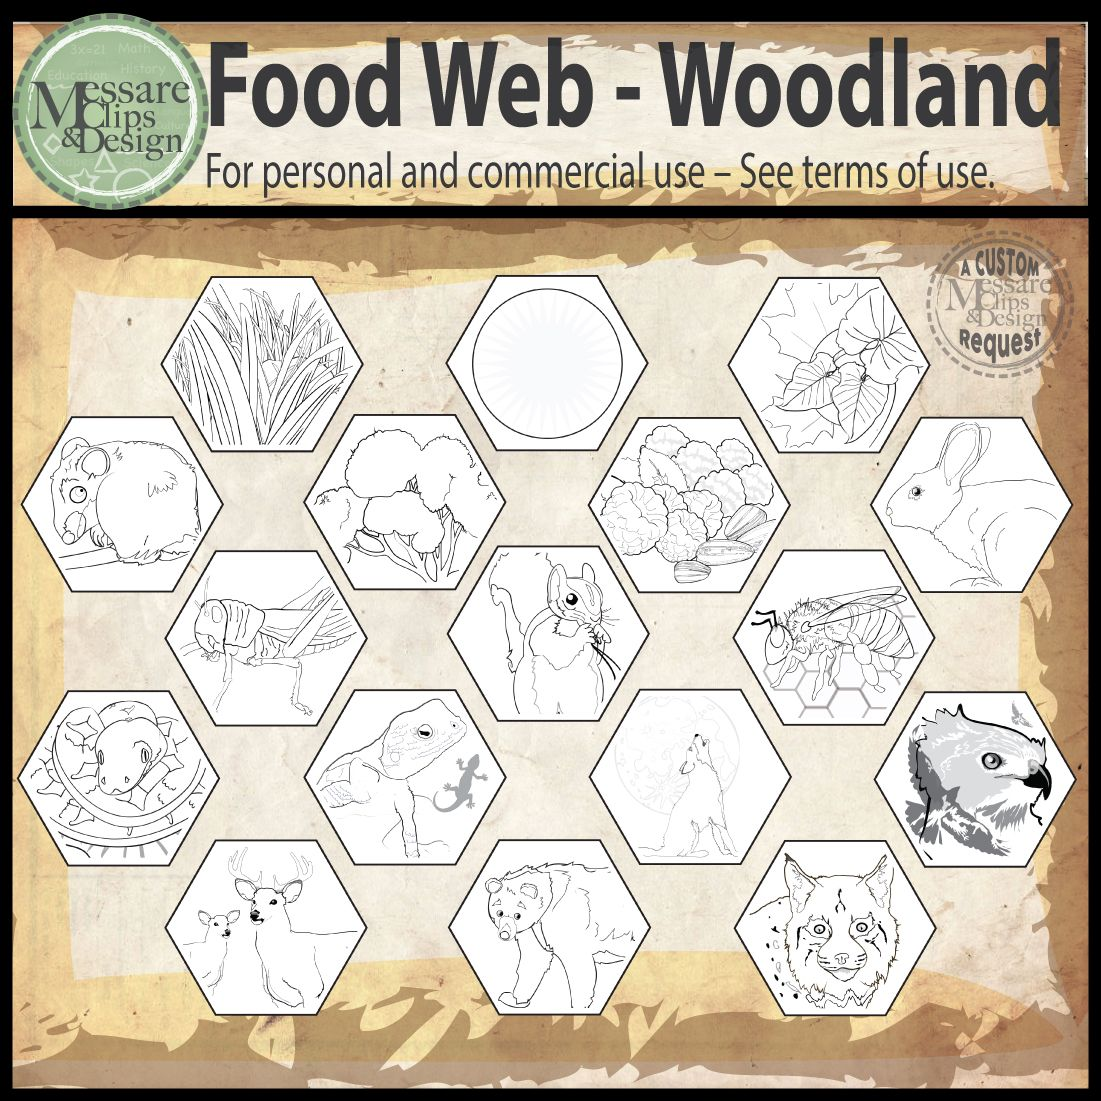 Woodland Animal Food Web Clip Art Messare Clips And